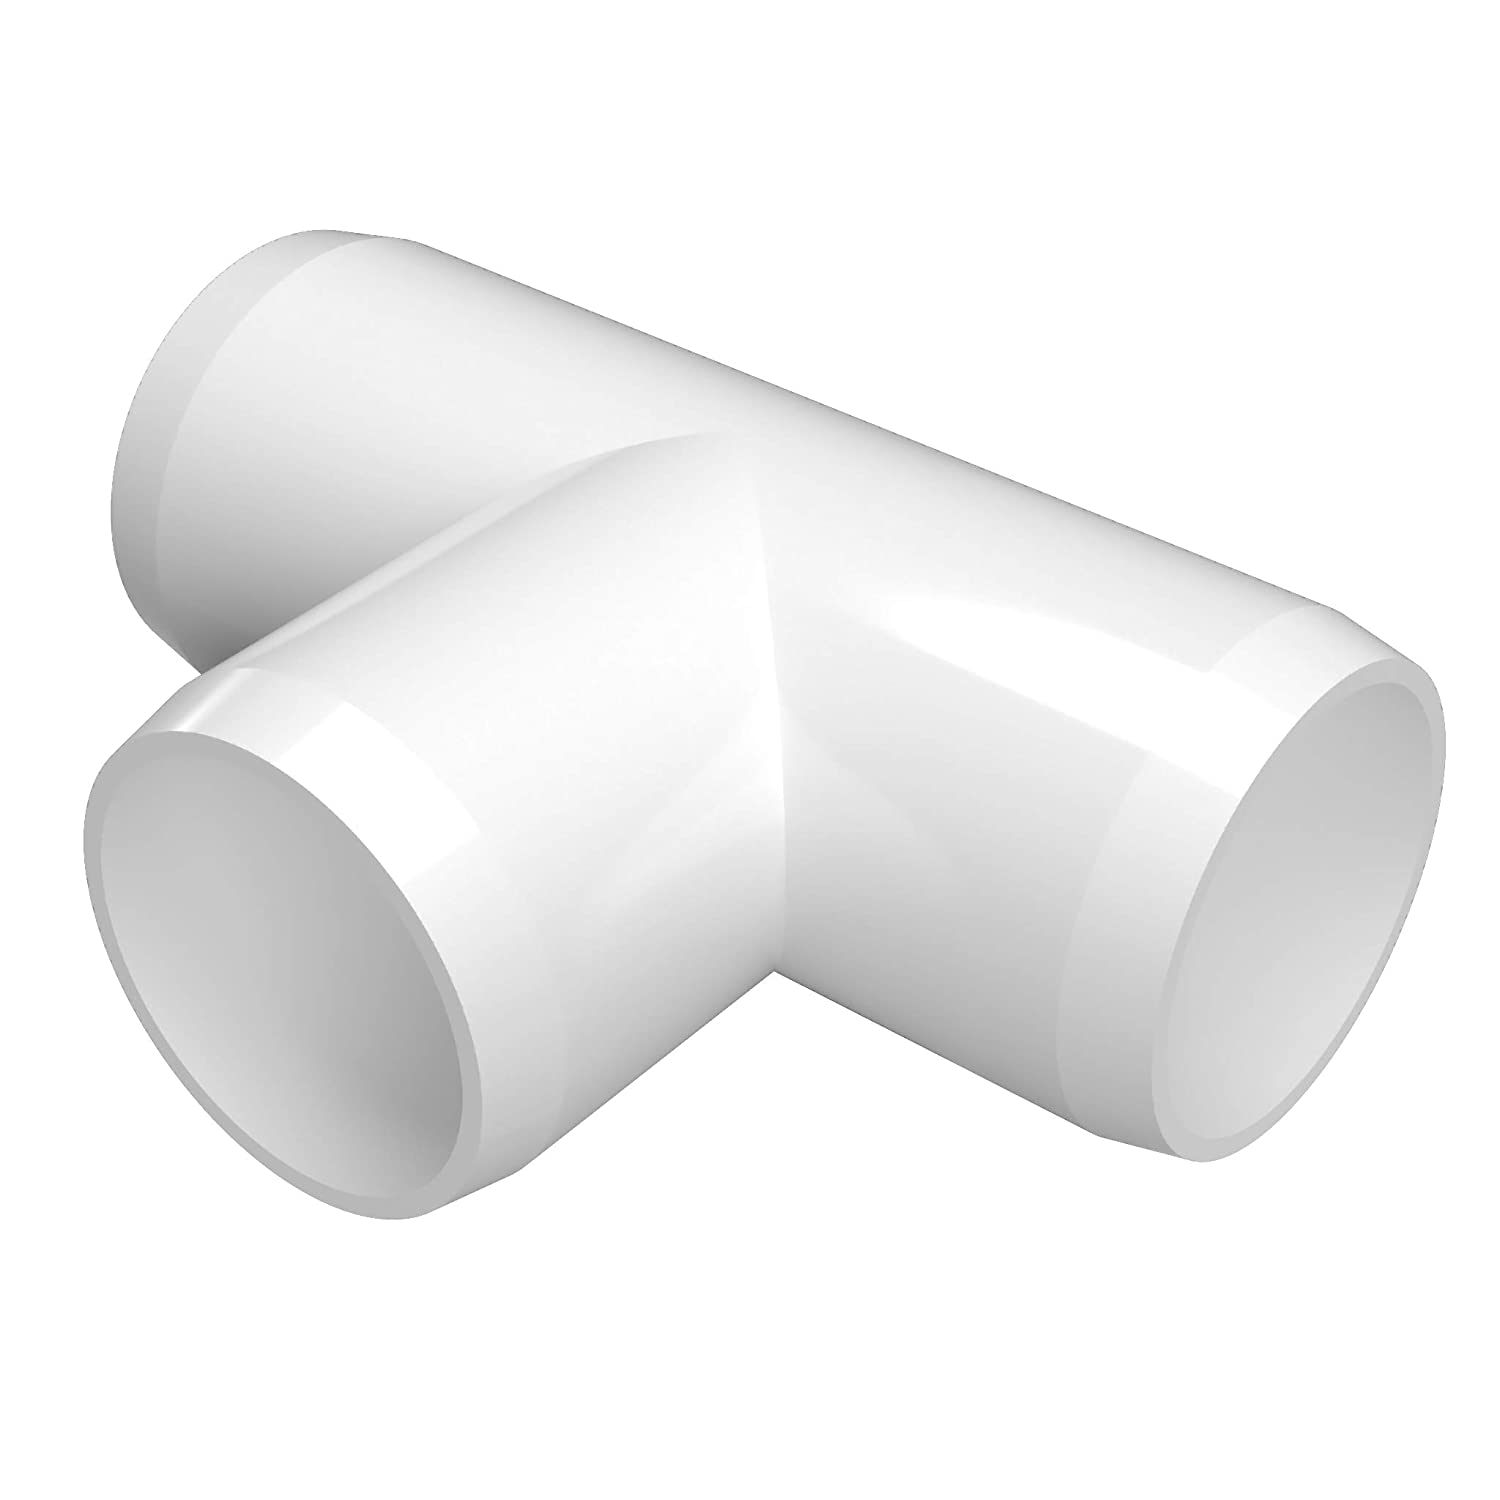 "FORMUFIT F112TEE-WH-4 Tee PVC Fitting, Furniture Grade, 1-1/2"" Size, White (Pack of 4)"